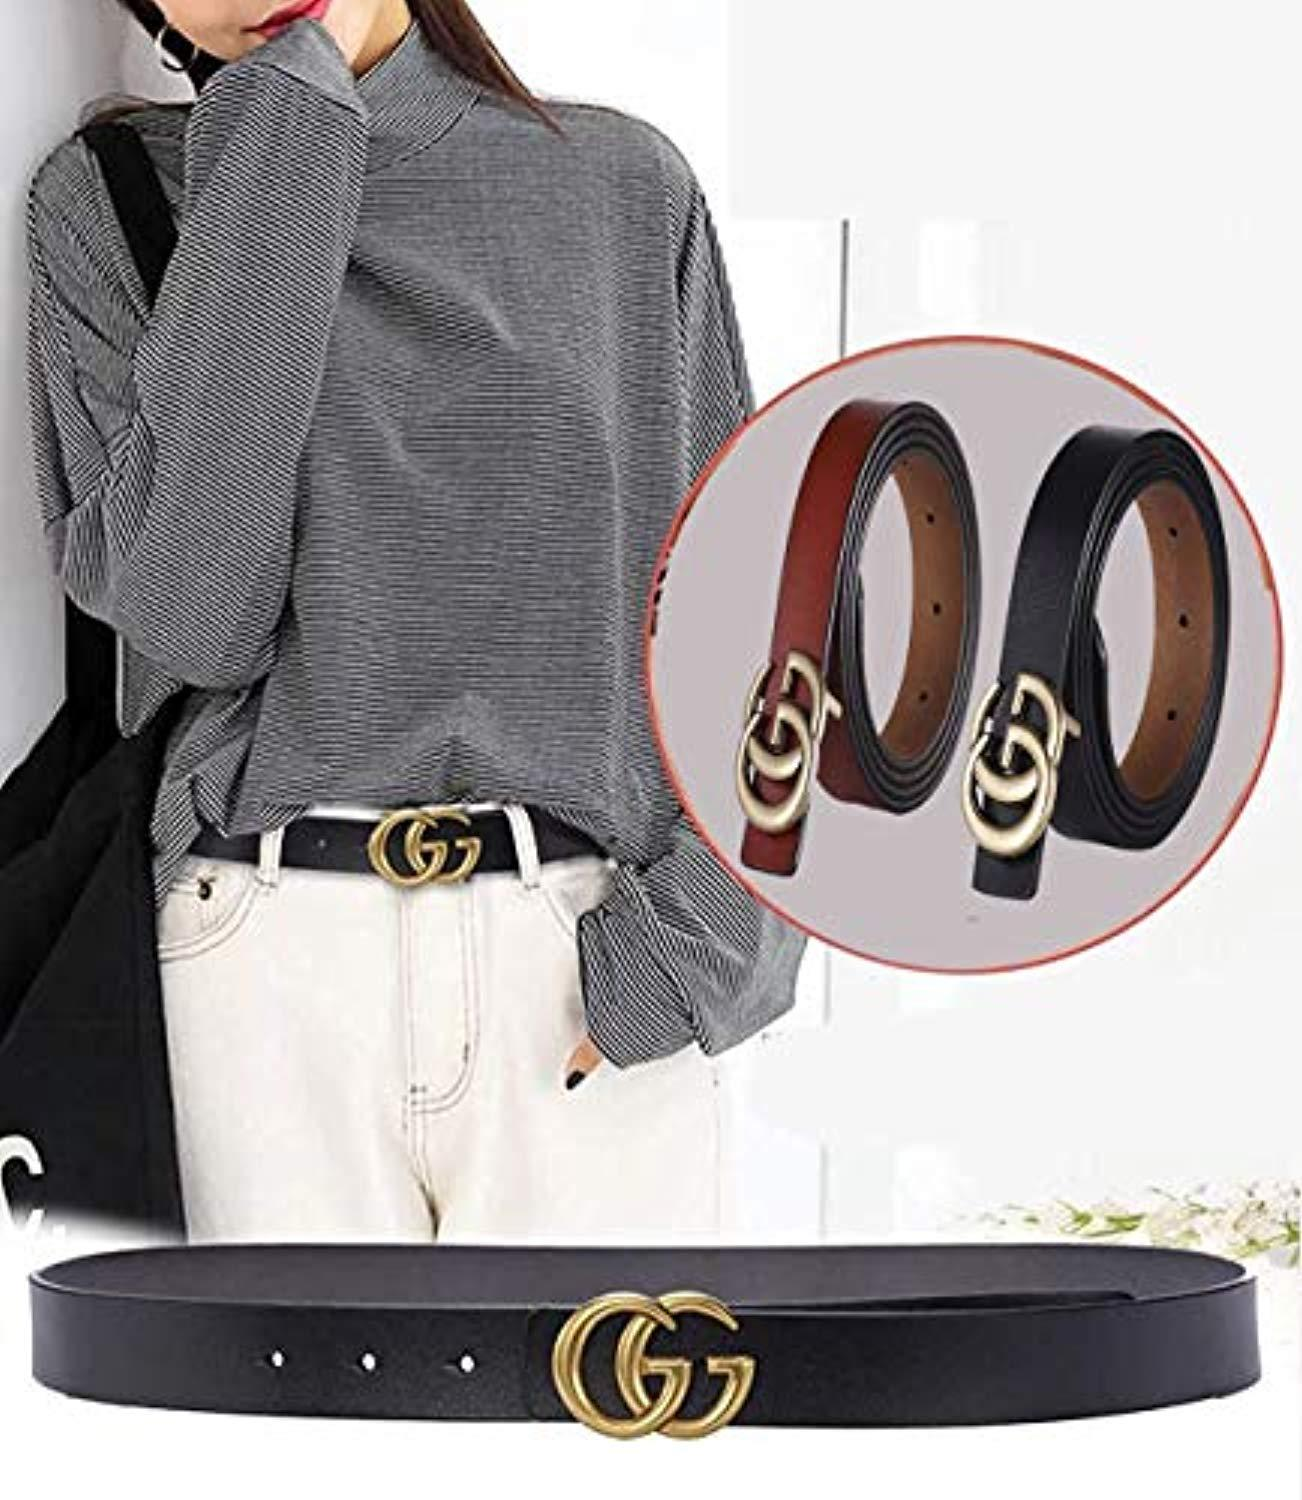 8933a4ceb660 POKTOK Womens G-Style Genuine Leather Belt Vintage Thin Dress Belts For  Girl Fashion Belt For Jeans With Letter Buckle